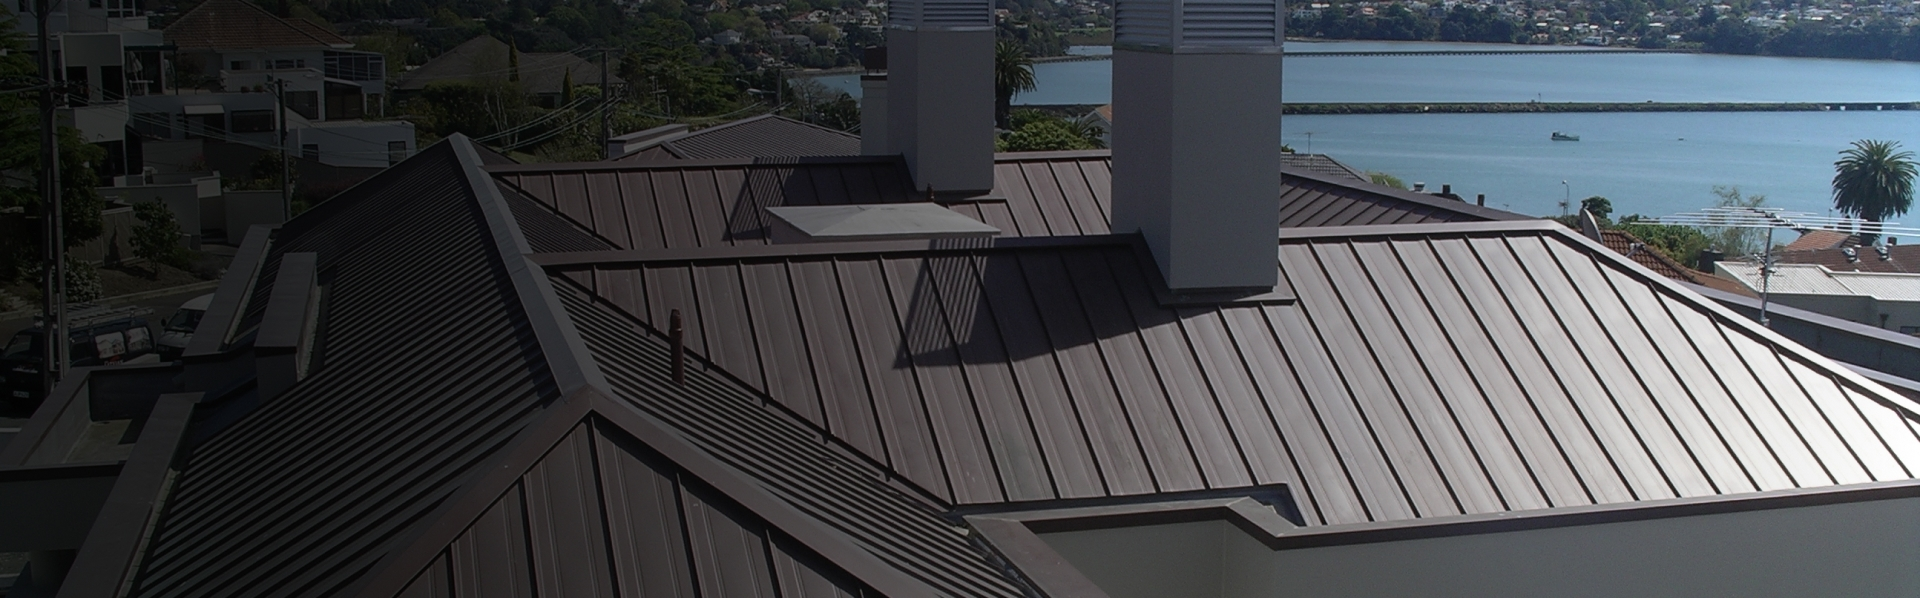 A nice metal roof with a lake in the background.